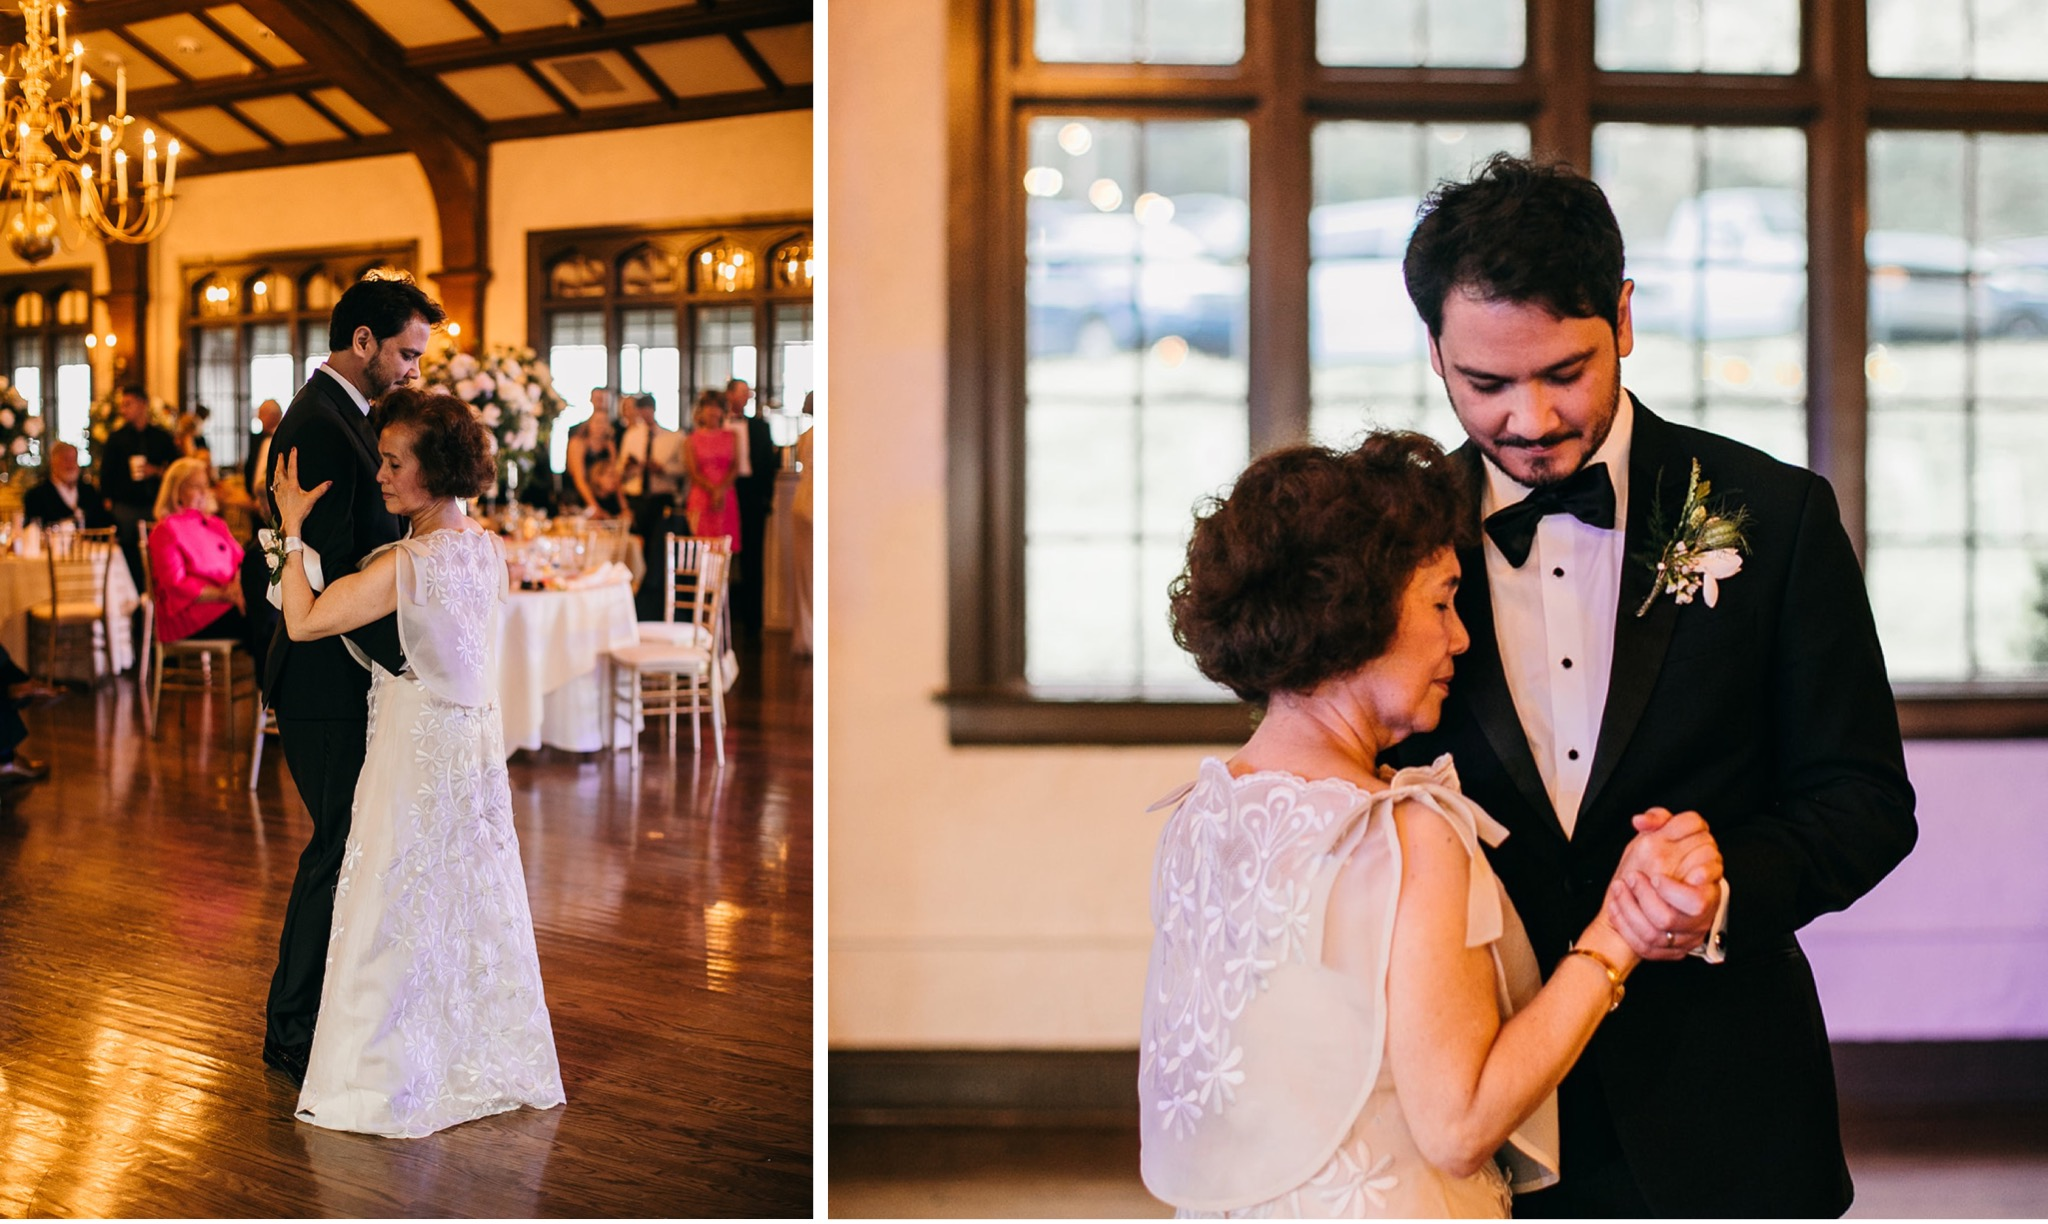 groom and his mother dance closely together during his wedding reception